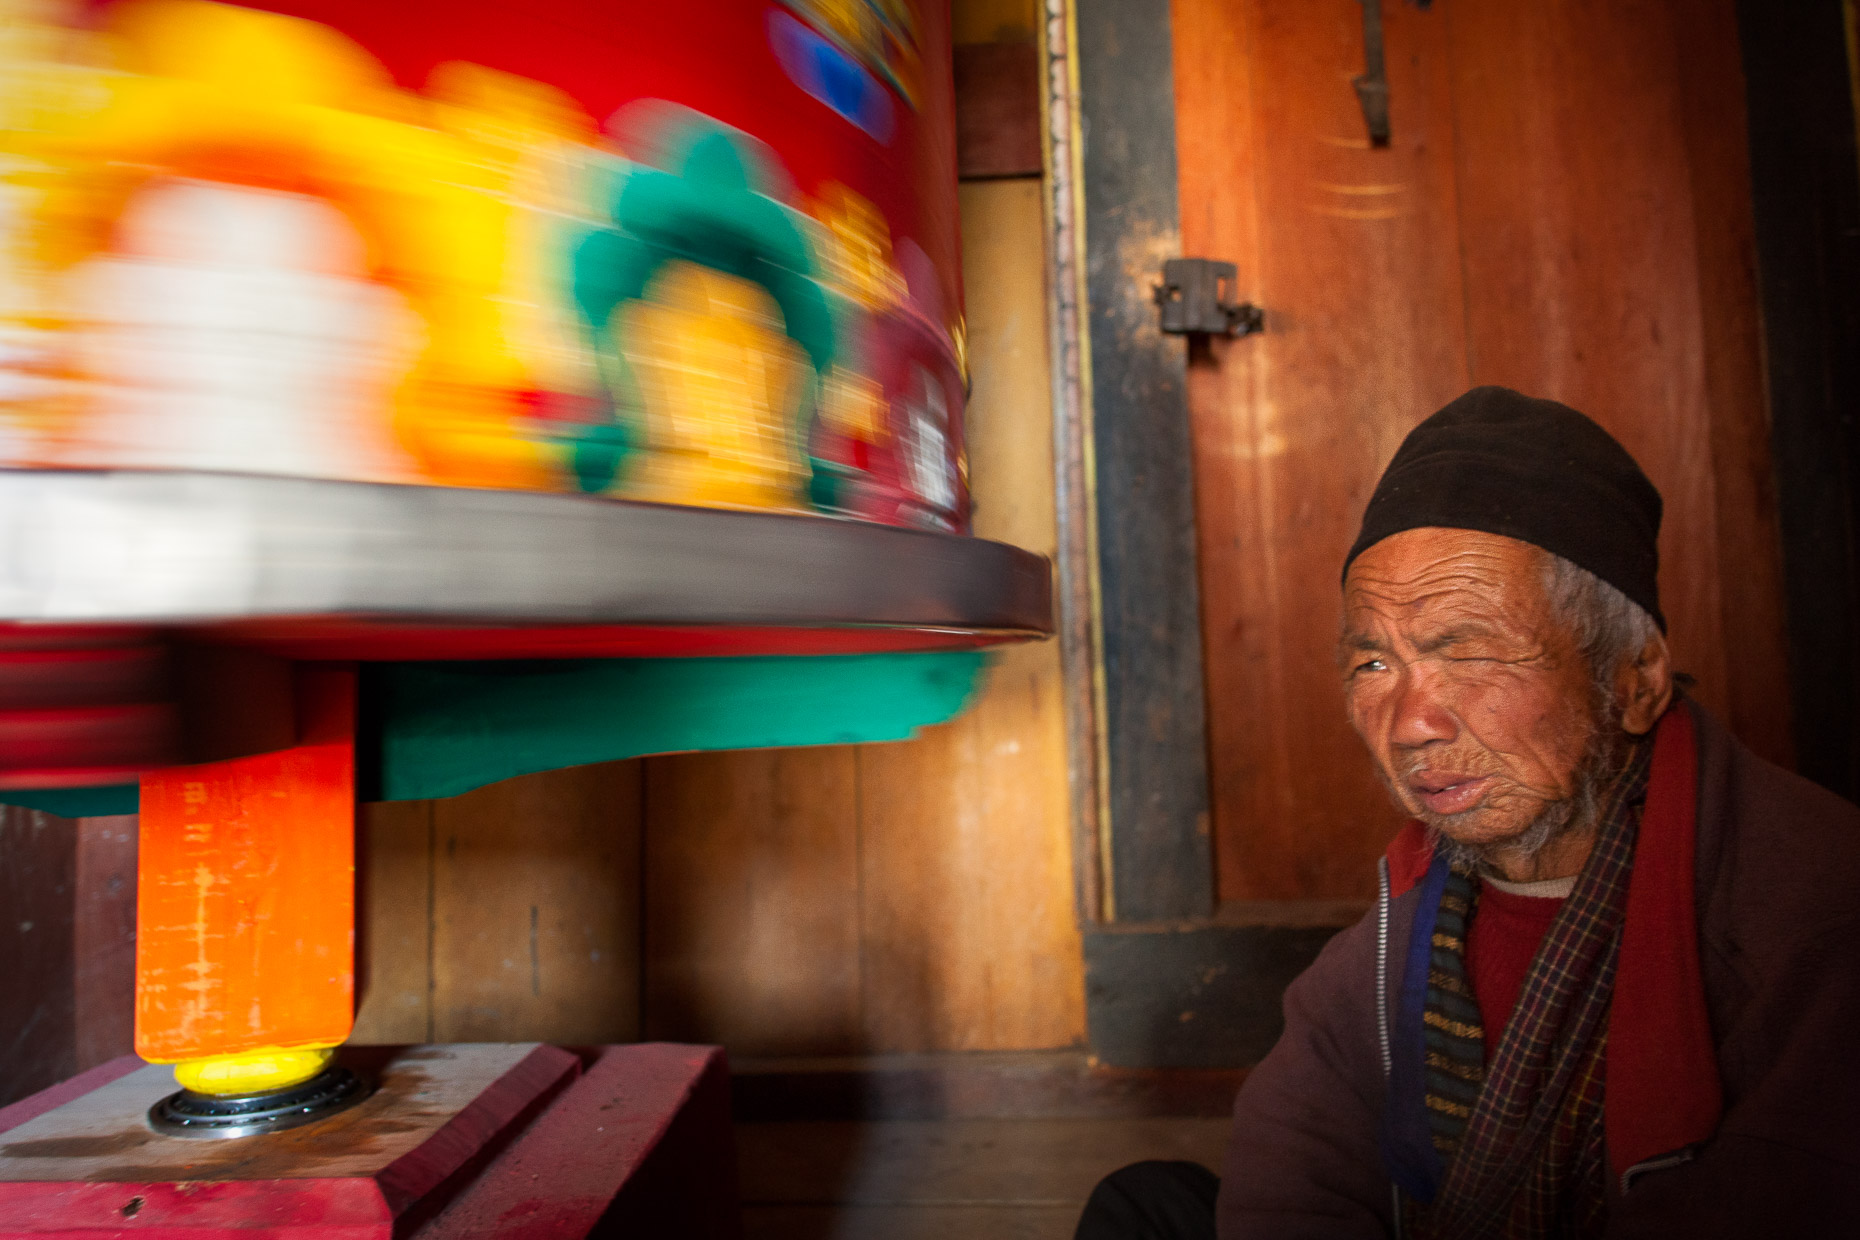 Old man at prayer wheel, Ugyen Choling, central Bhutan